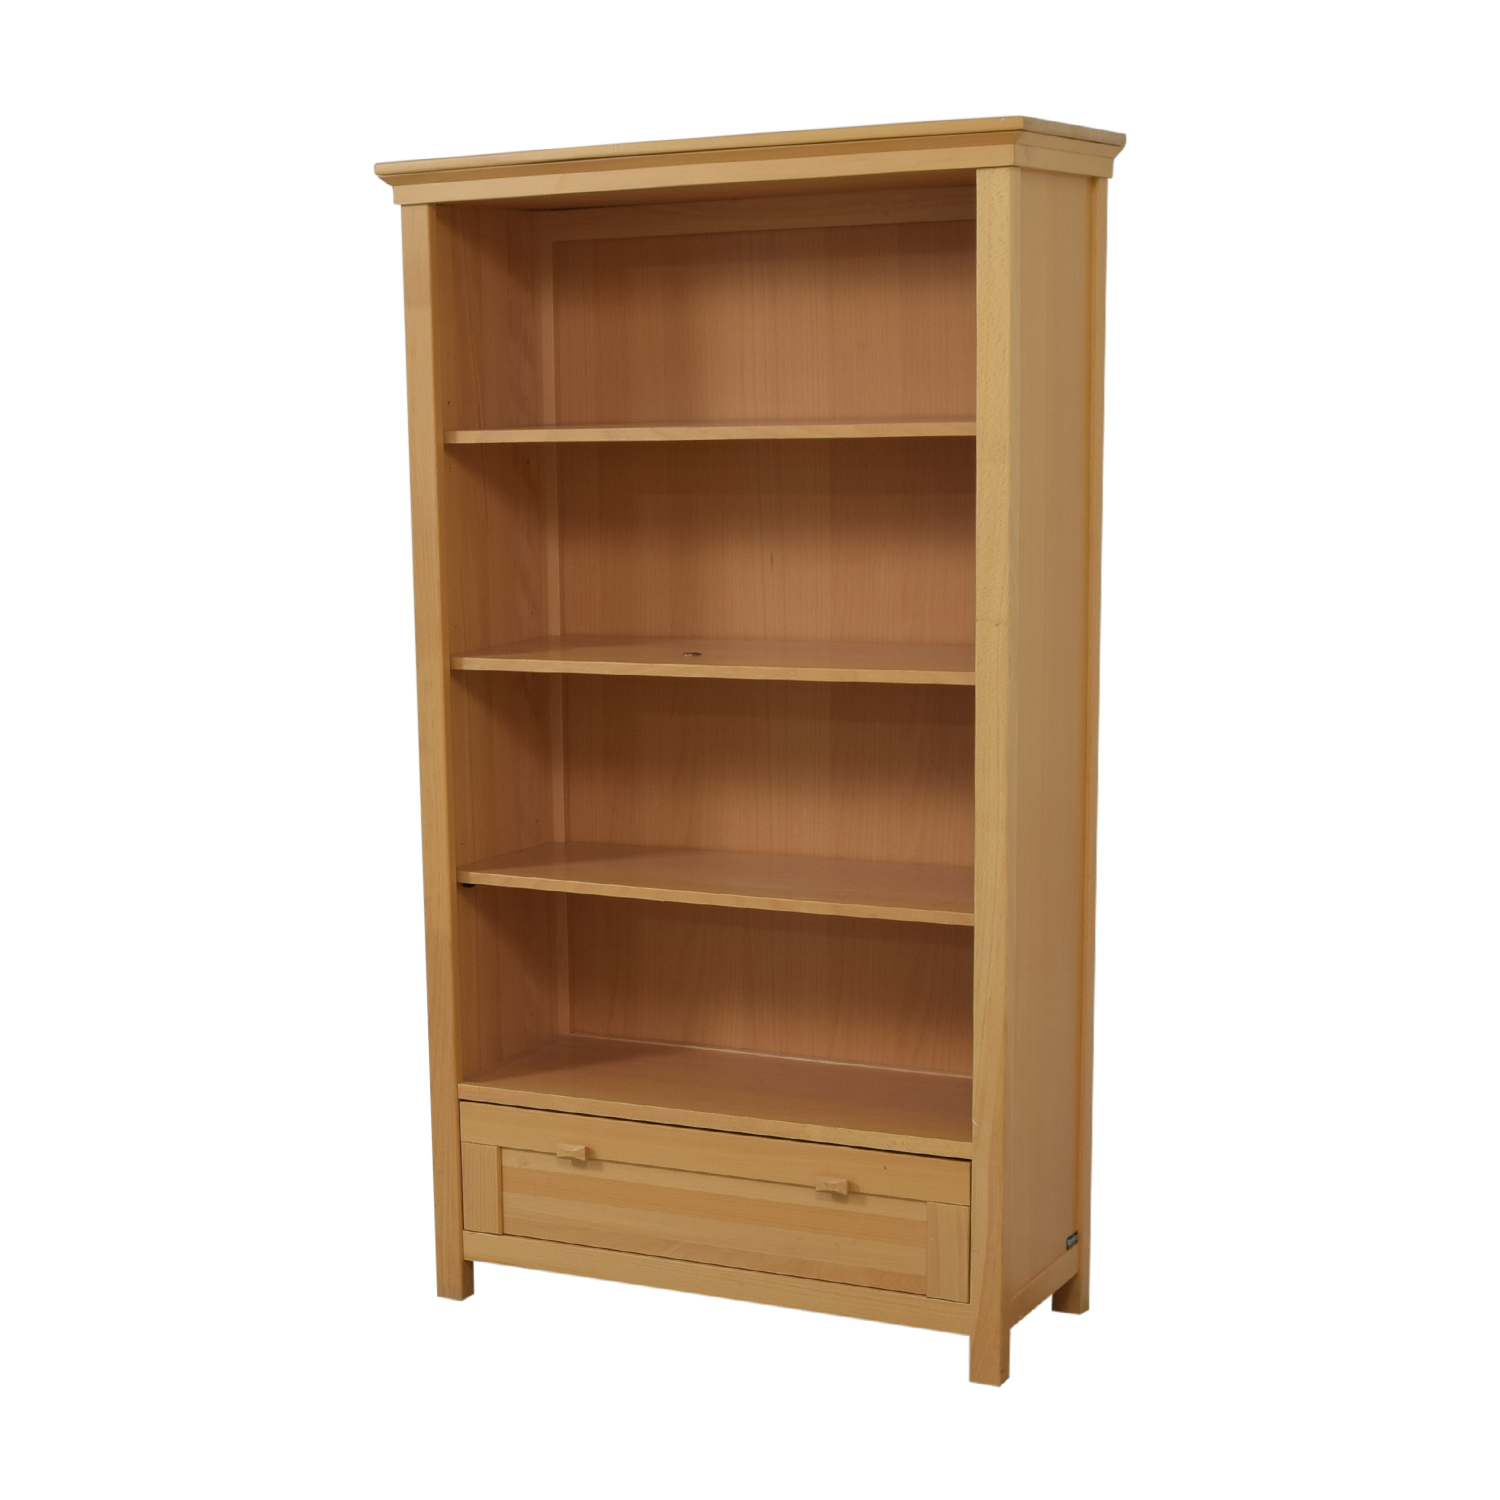 Romina Romina Single Drawer Wood Bookcase on sale